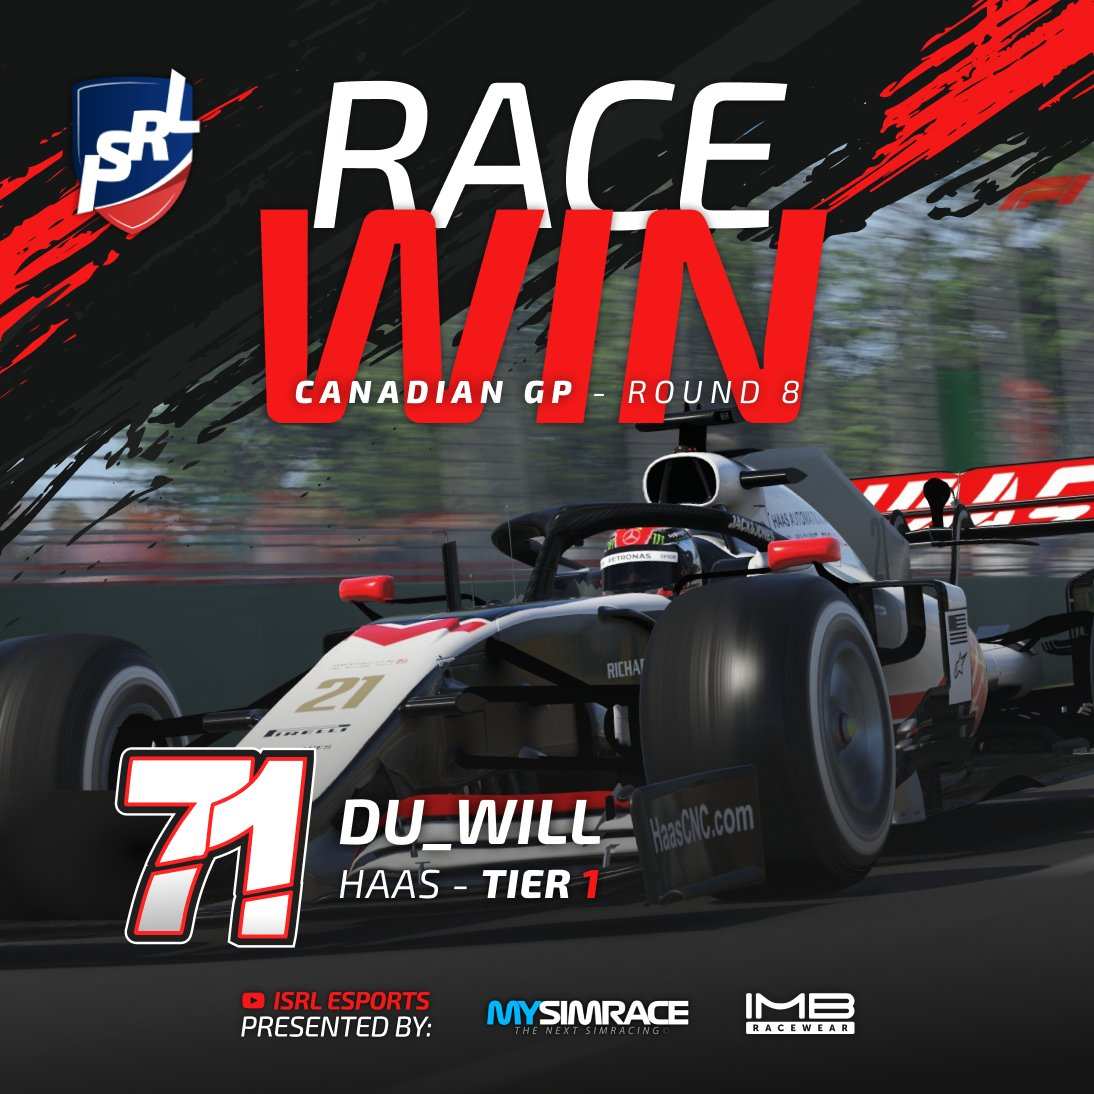 The #isrlseason3 carries on and our home race has come and gone! 🇨🇦  We had a thrilling race weekend filled with variable conditions, overtakes, crashes and more.... check out the 3 drivers who prevailed and won! ⬇️  Race replays: https://t.co/0guqQ3fLUy  #F1Esports #F12020 https://t.co/L9jWsprklb